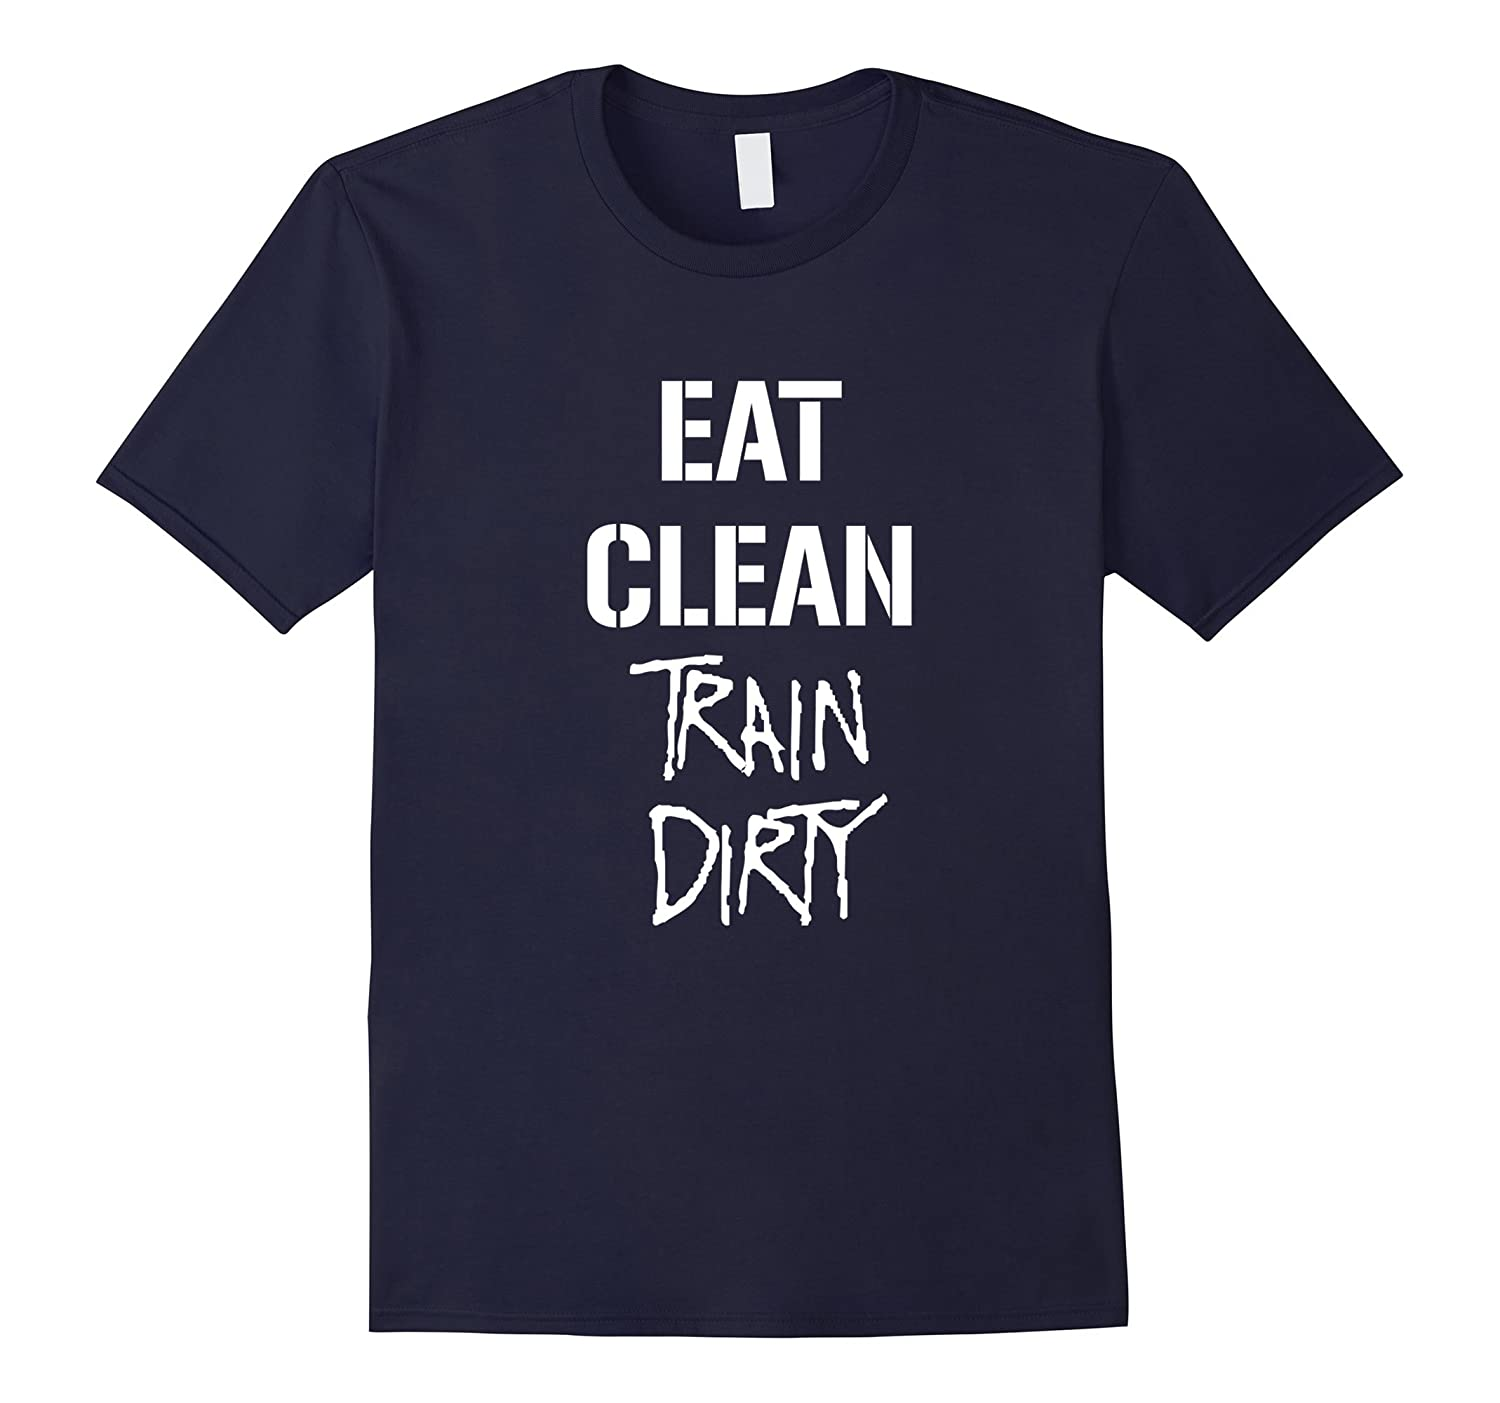 Awesome Workout Shirt - Eat Clean Train Dirty-TH